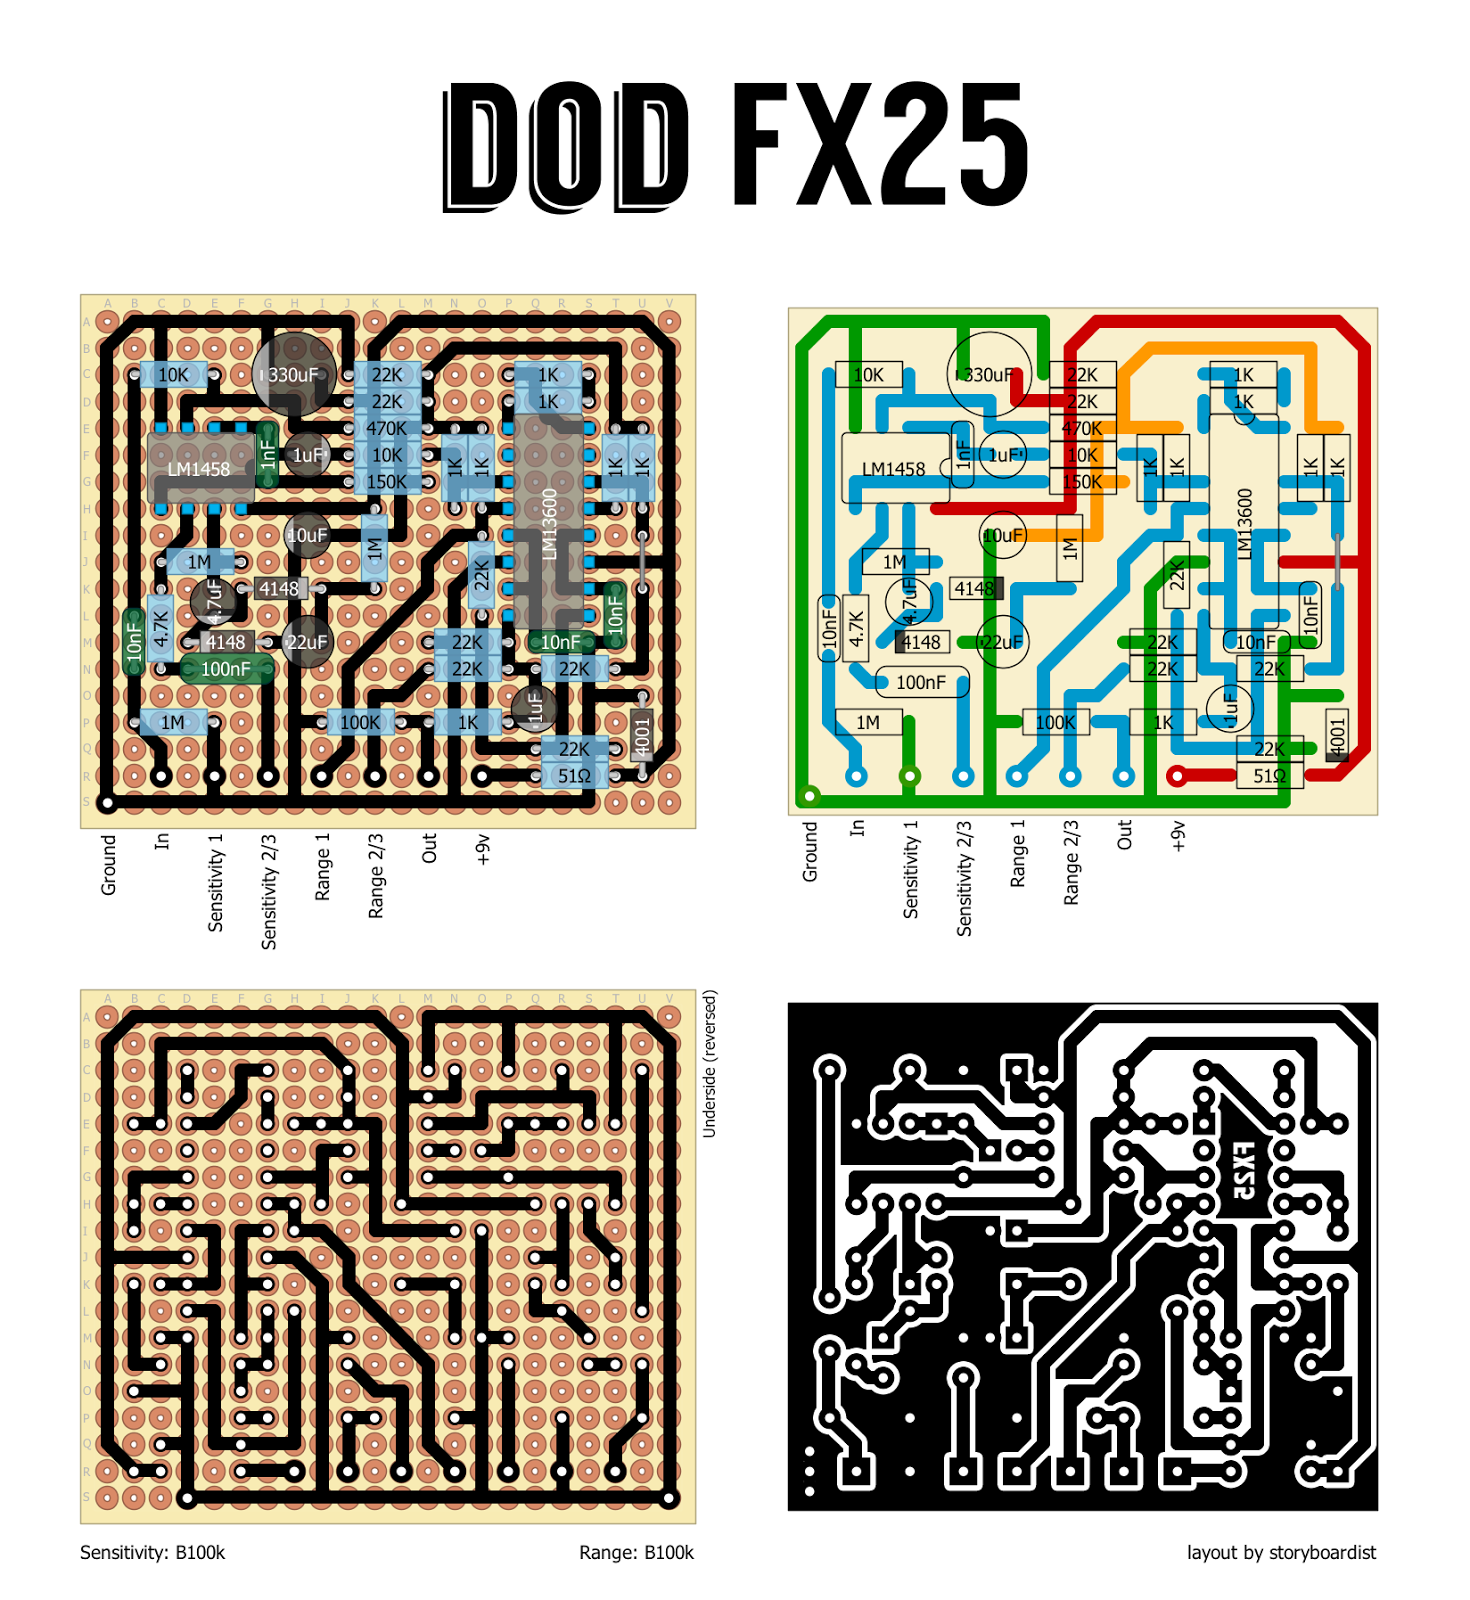 Dod Fx 25 Filter Type Mod Confirmed Wiring Diagram Standard The Layout Show Just A Wire On Lug 3 Of Sensitivity Pot But Not Other Lugs How You Would Connect